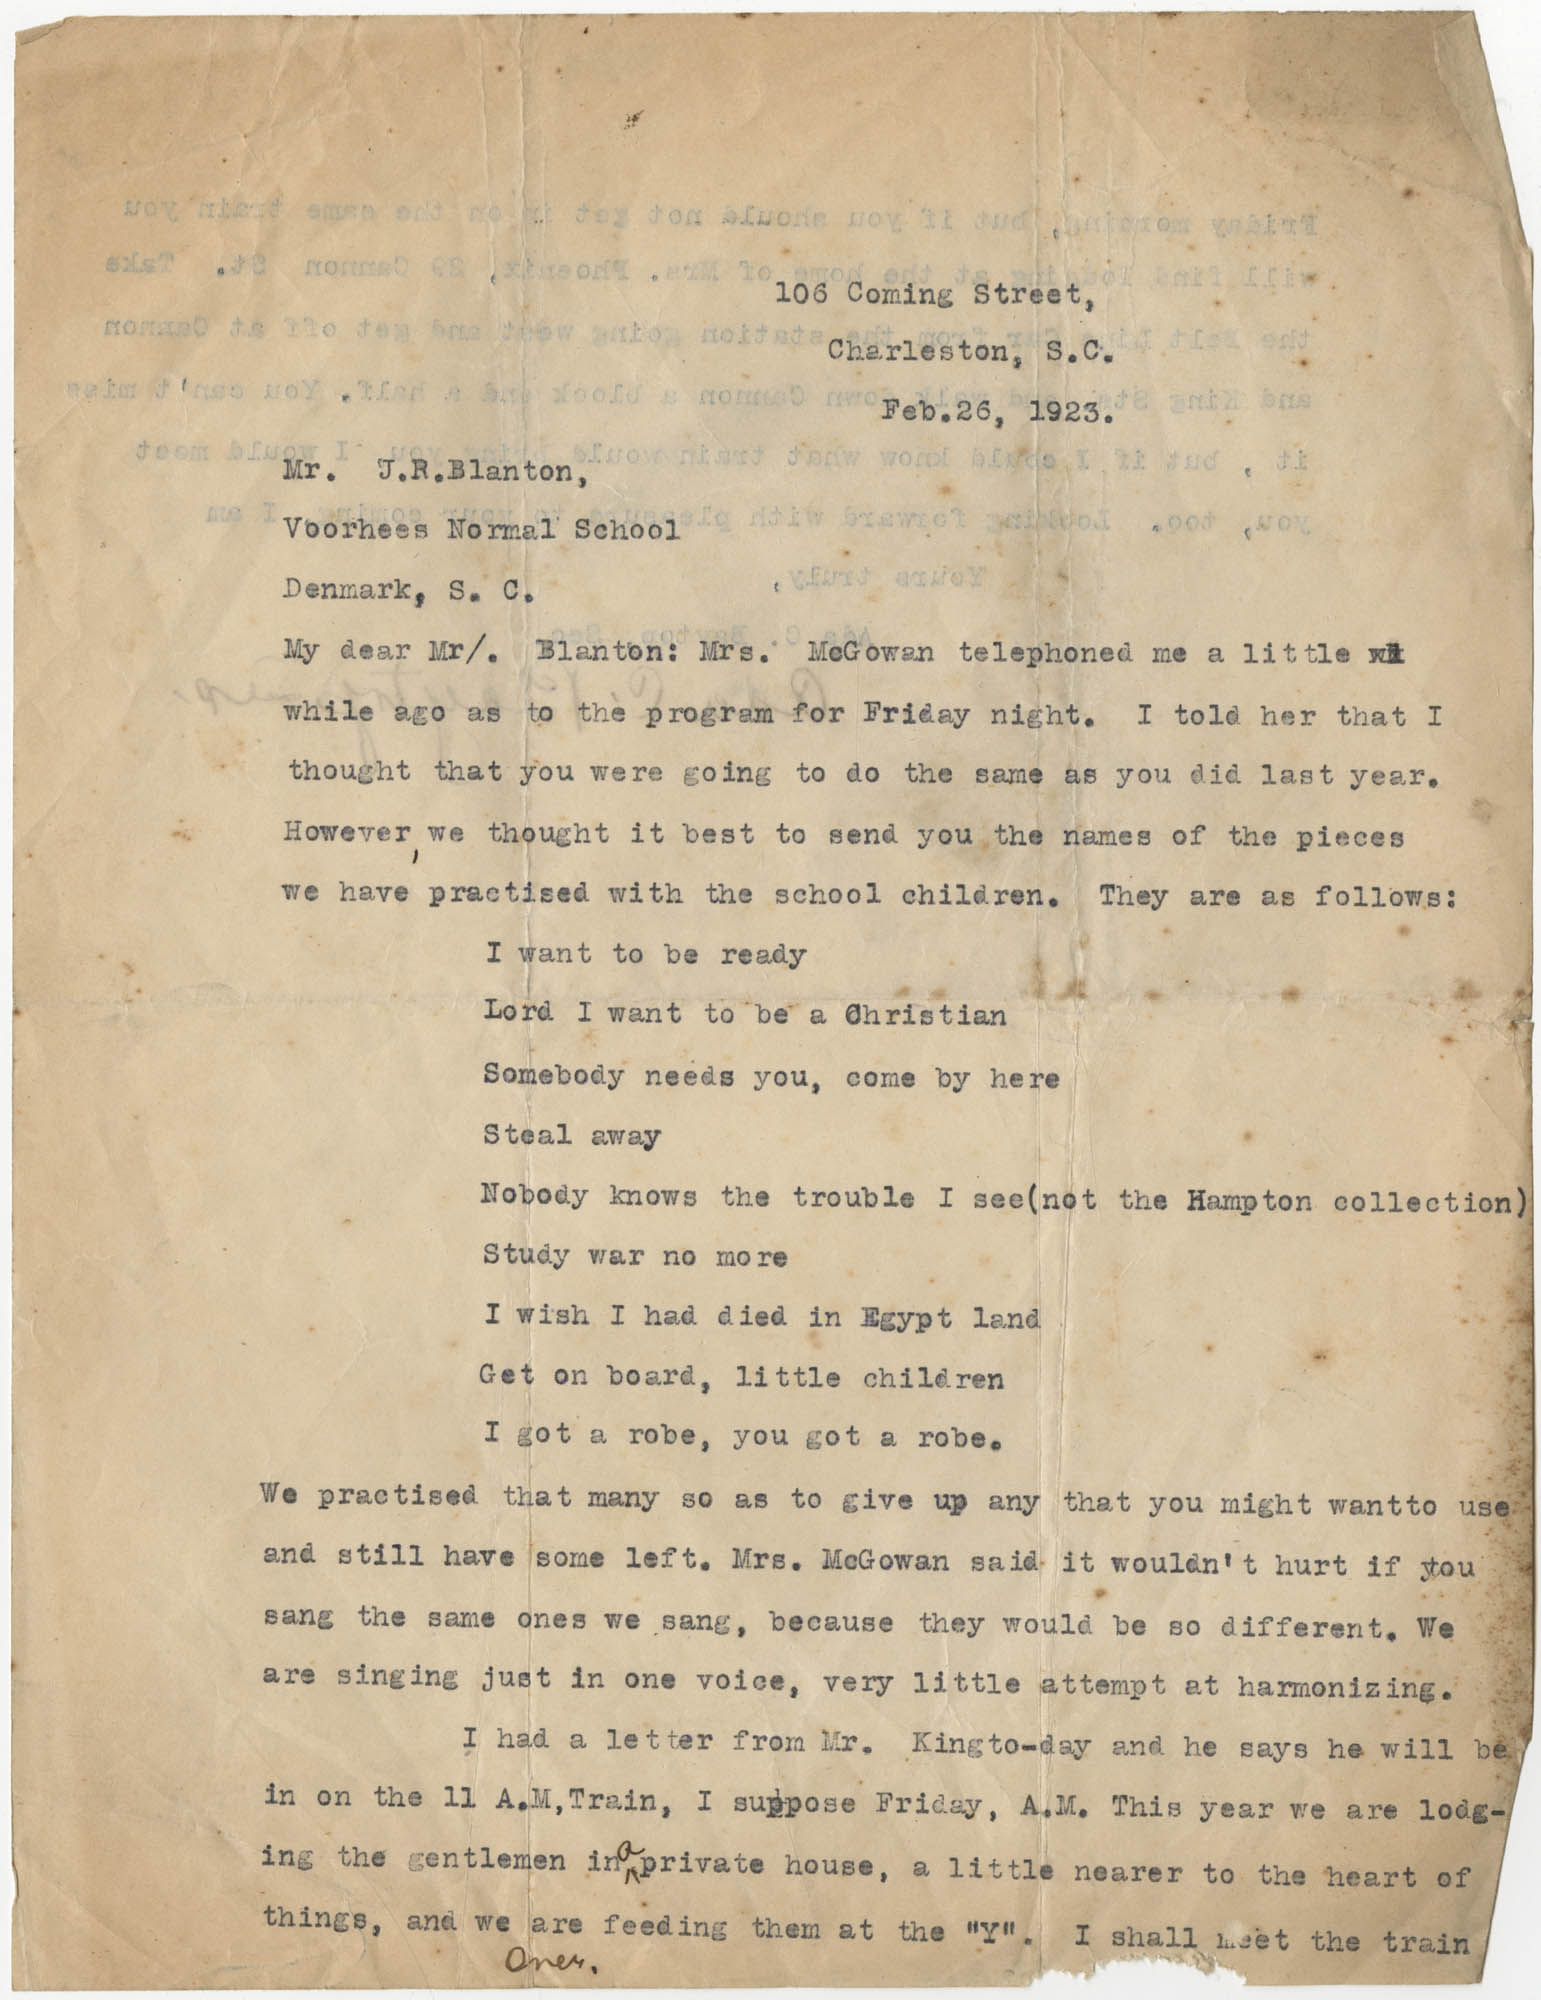 Letter from Ada C. Baytop to J. R. Blanton, February 26, 1923